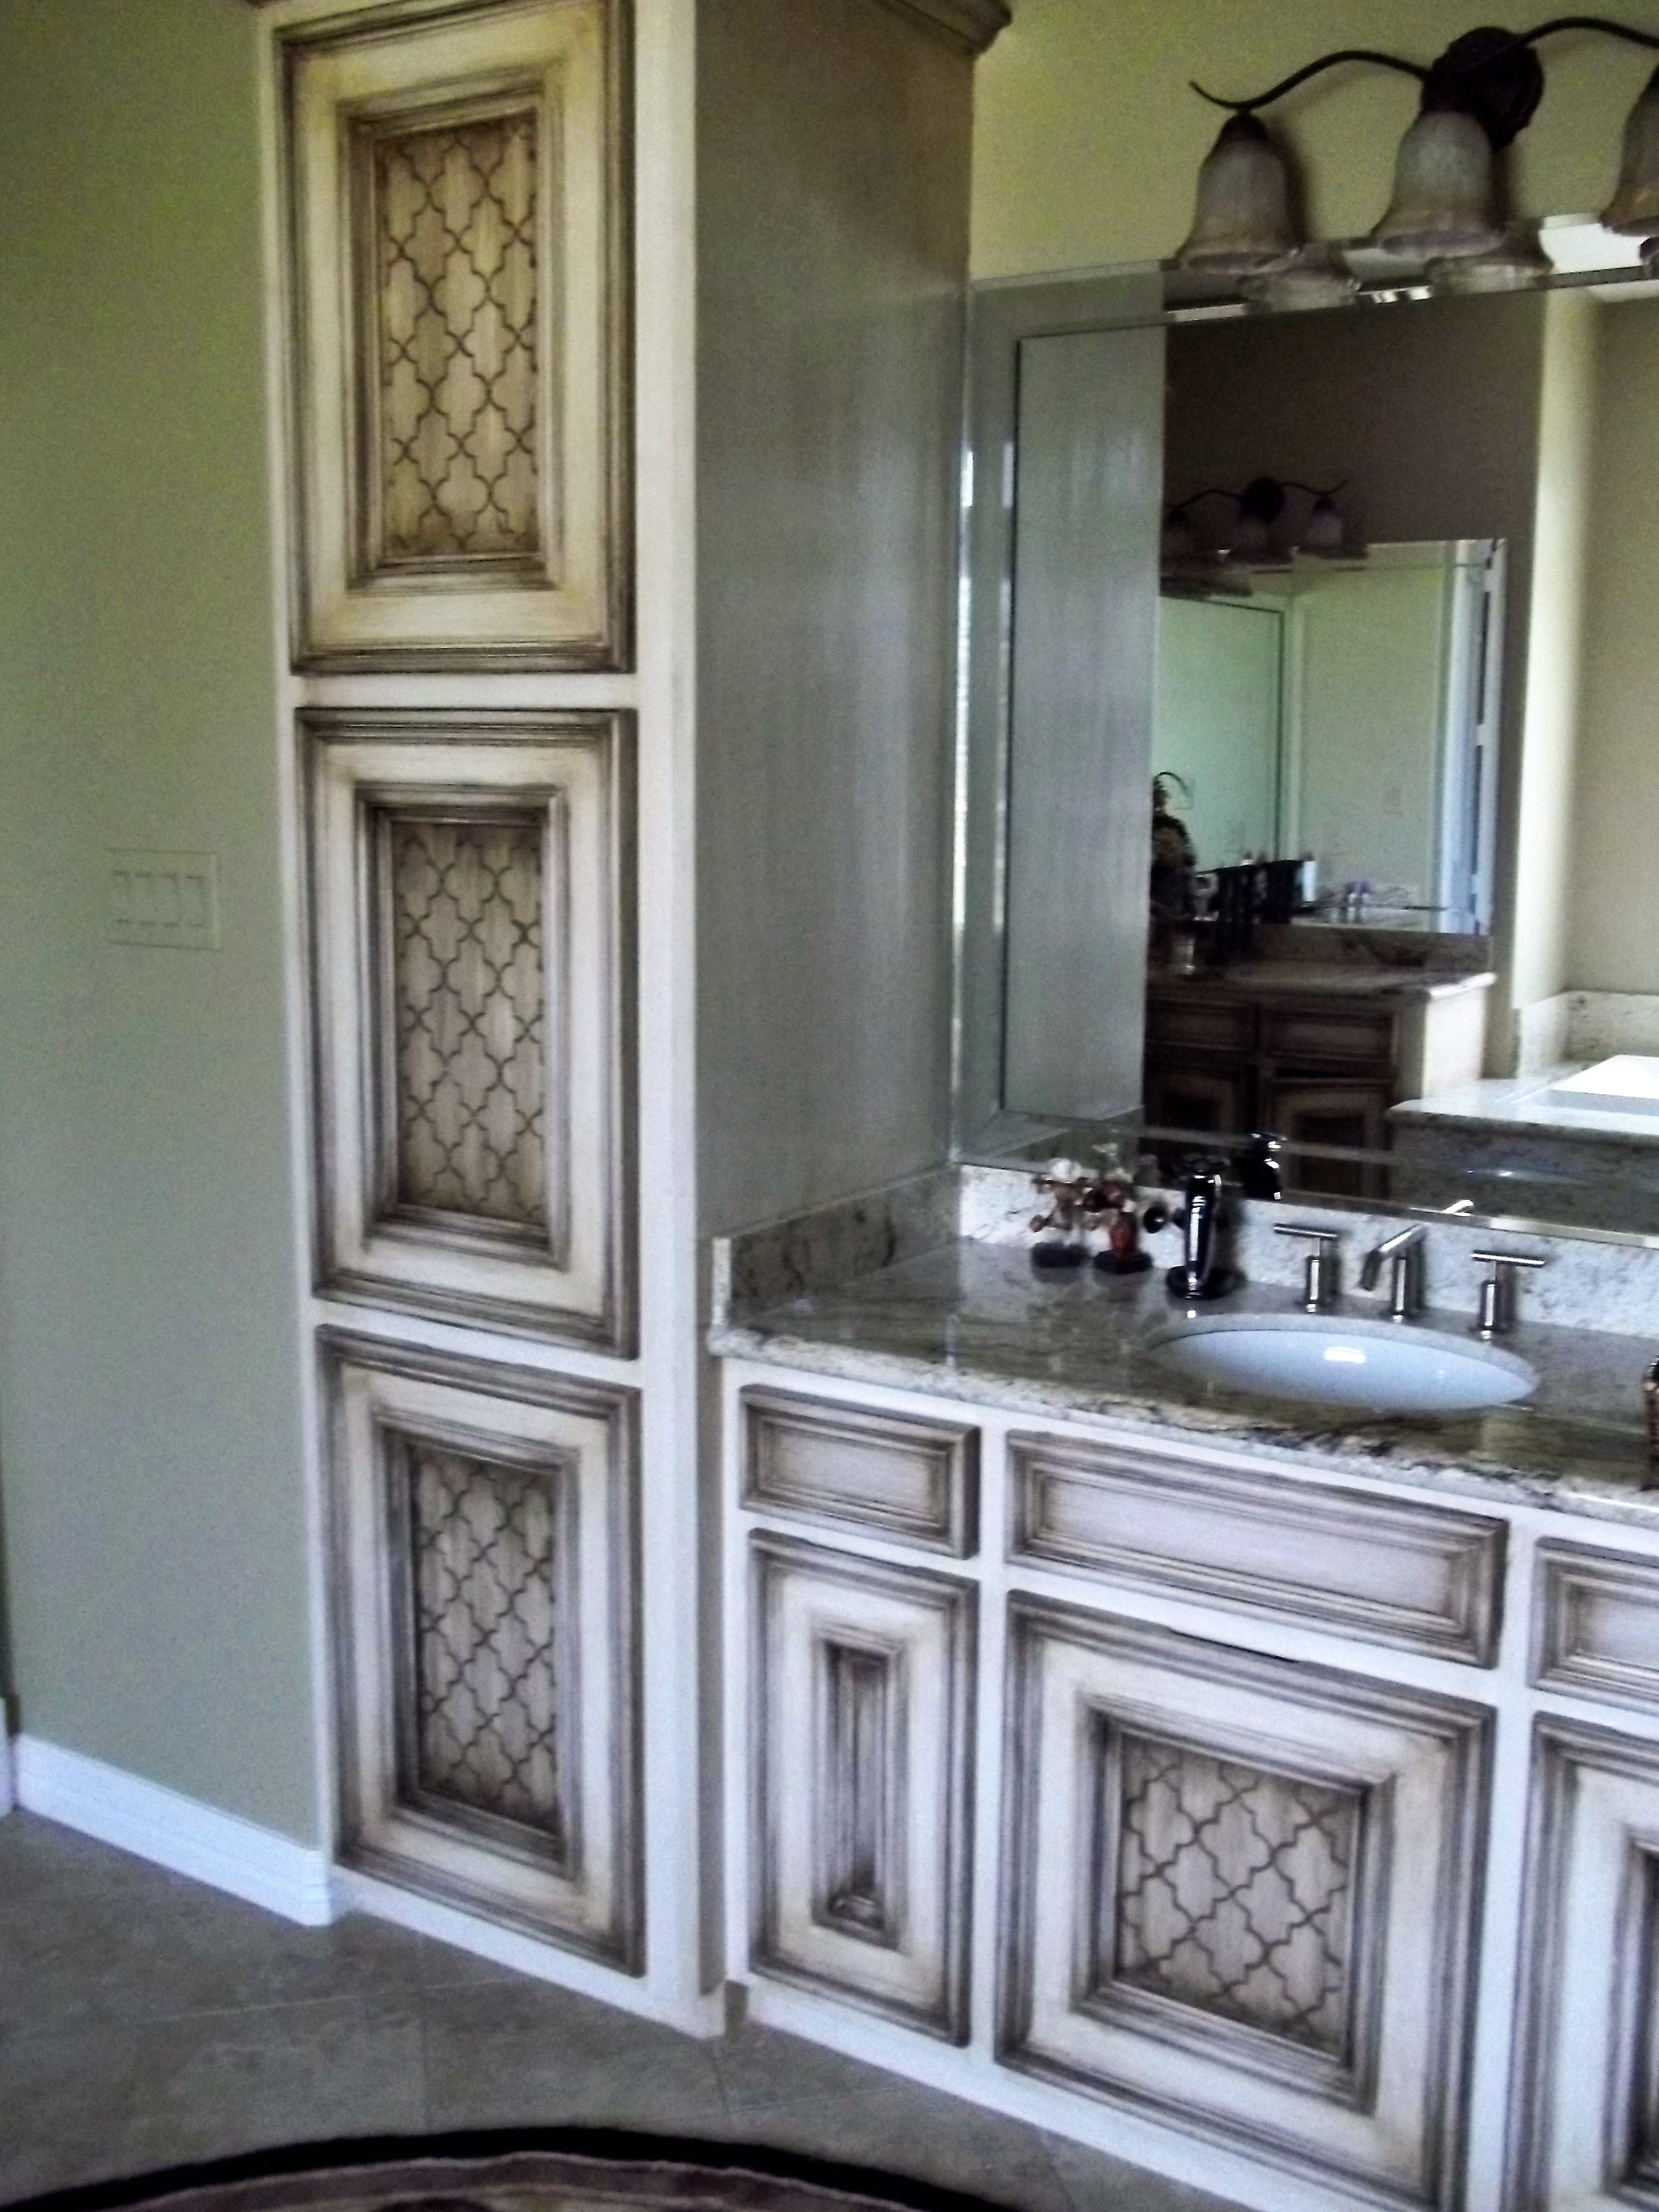 custom hand painted kitchen cabinets houston 832